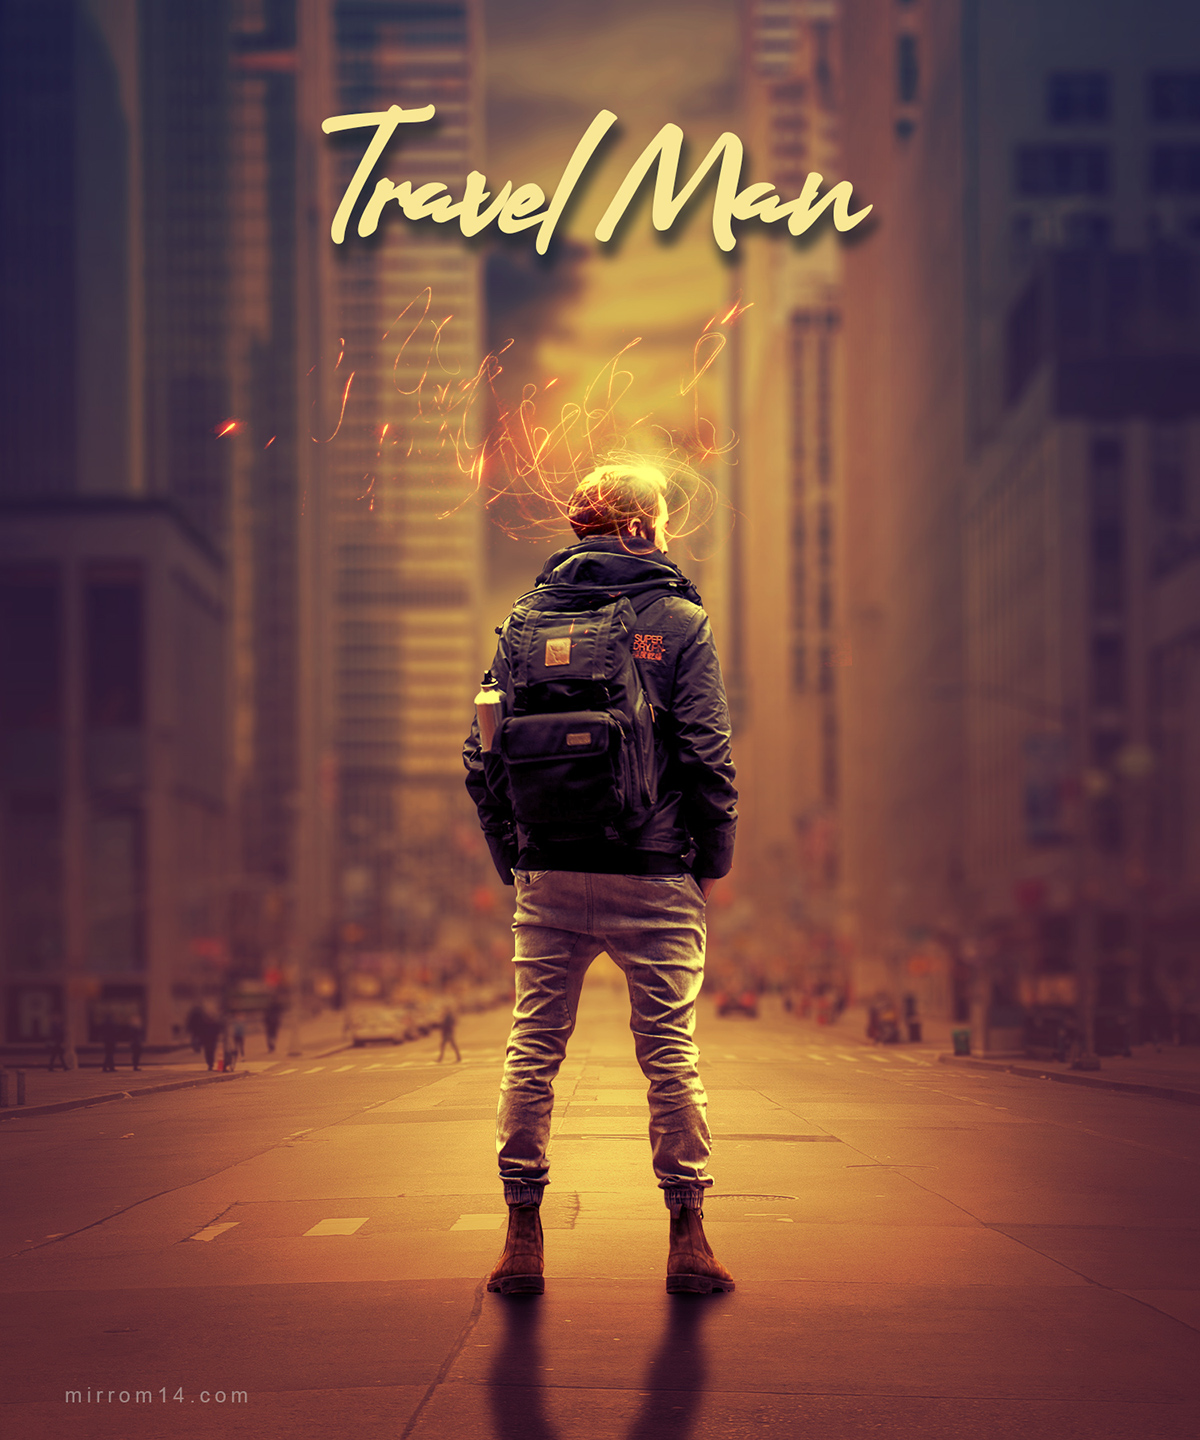 Create a Fantasy Travel Man Photo Manipulation in Photoshop